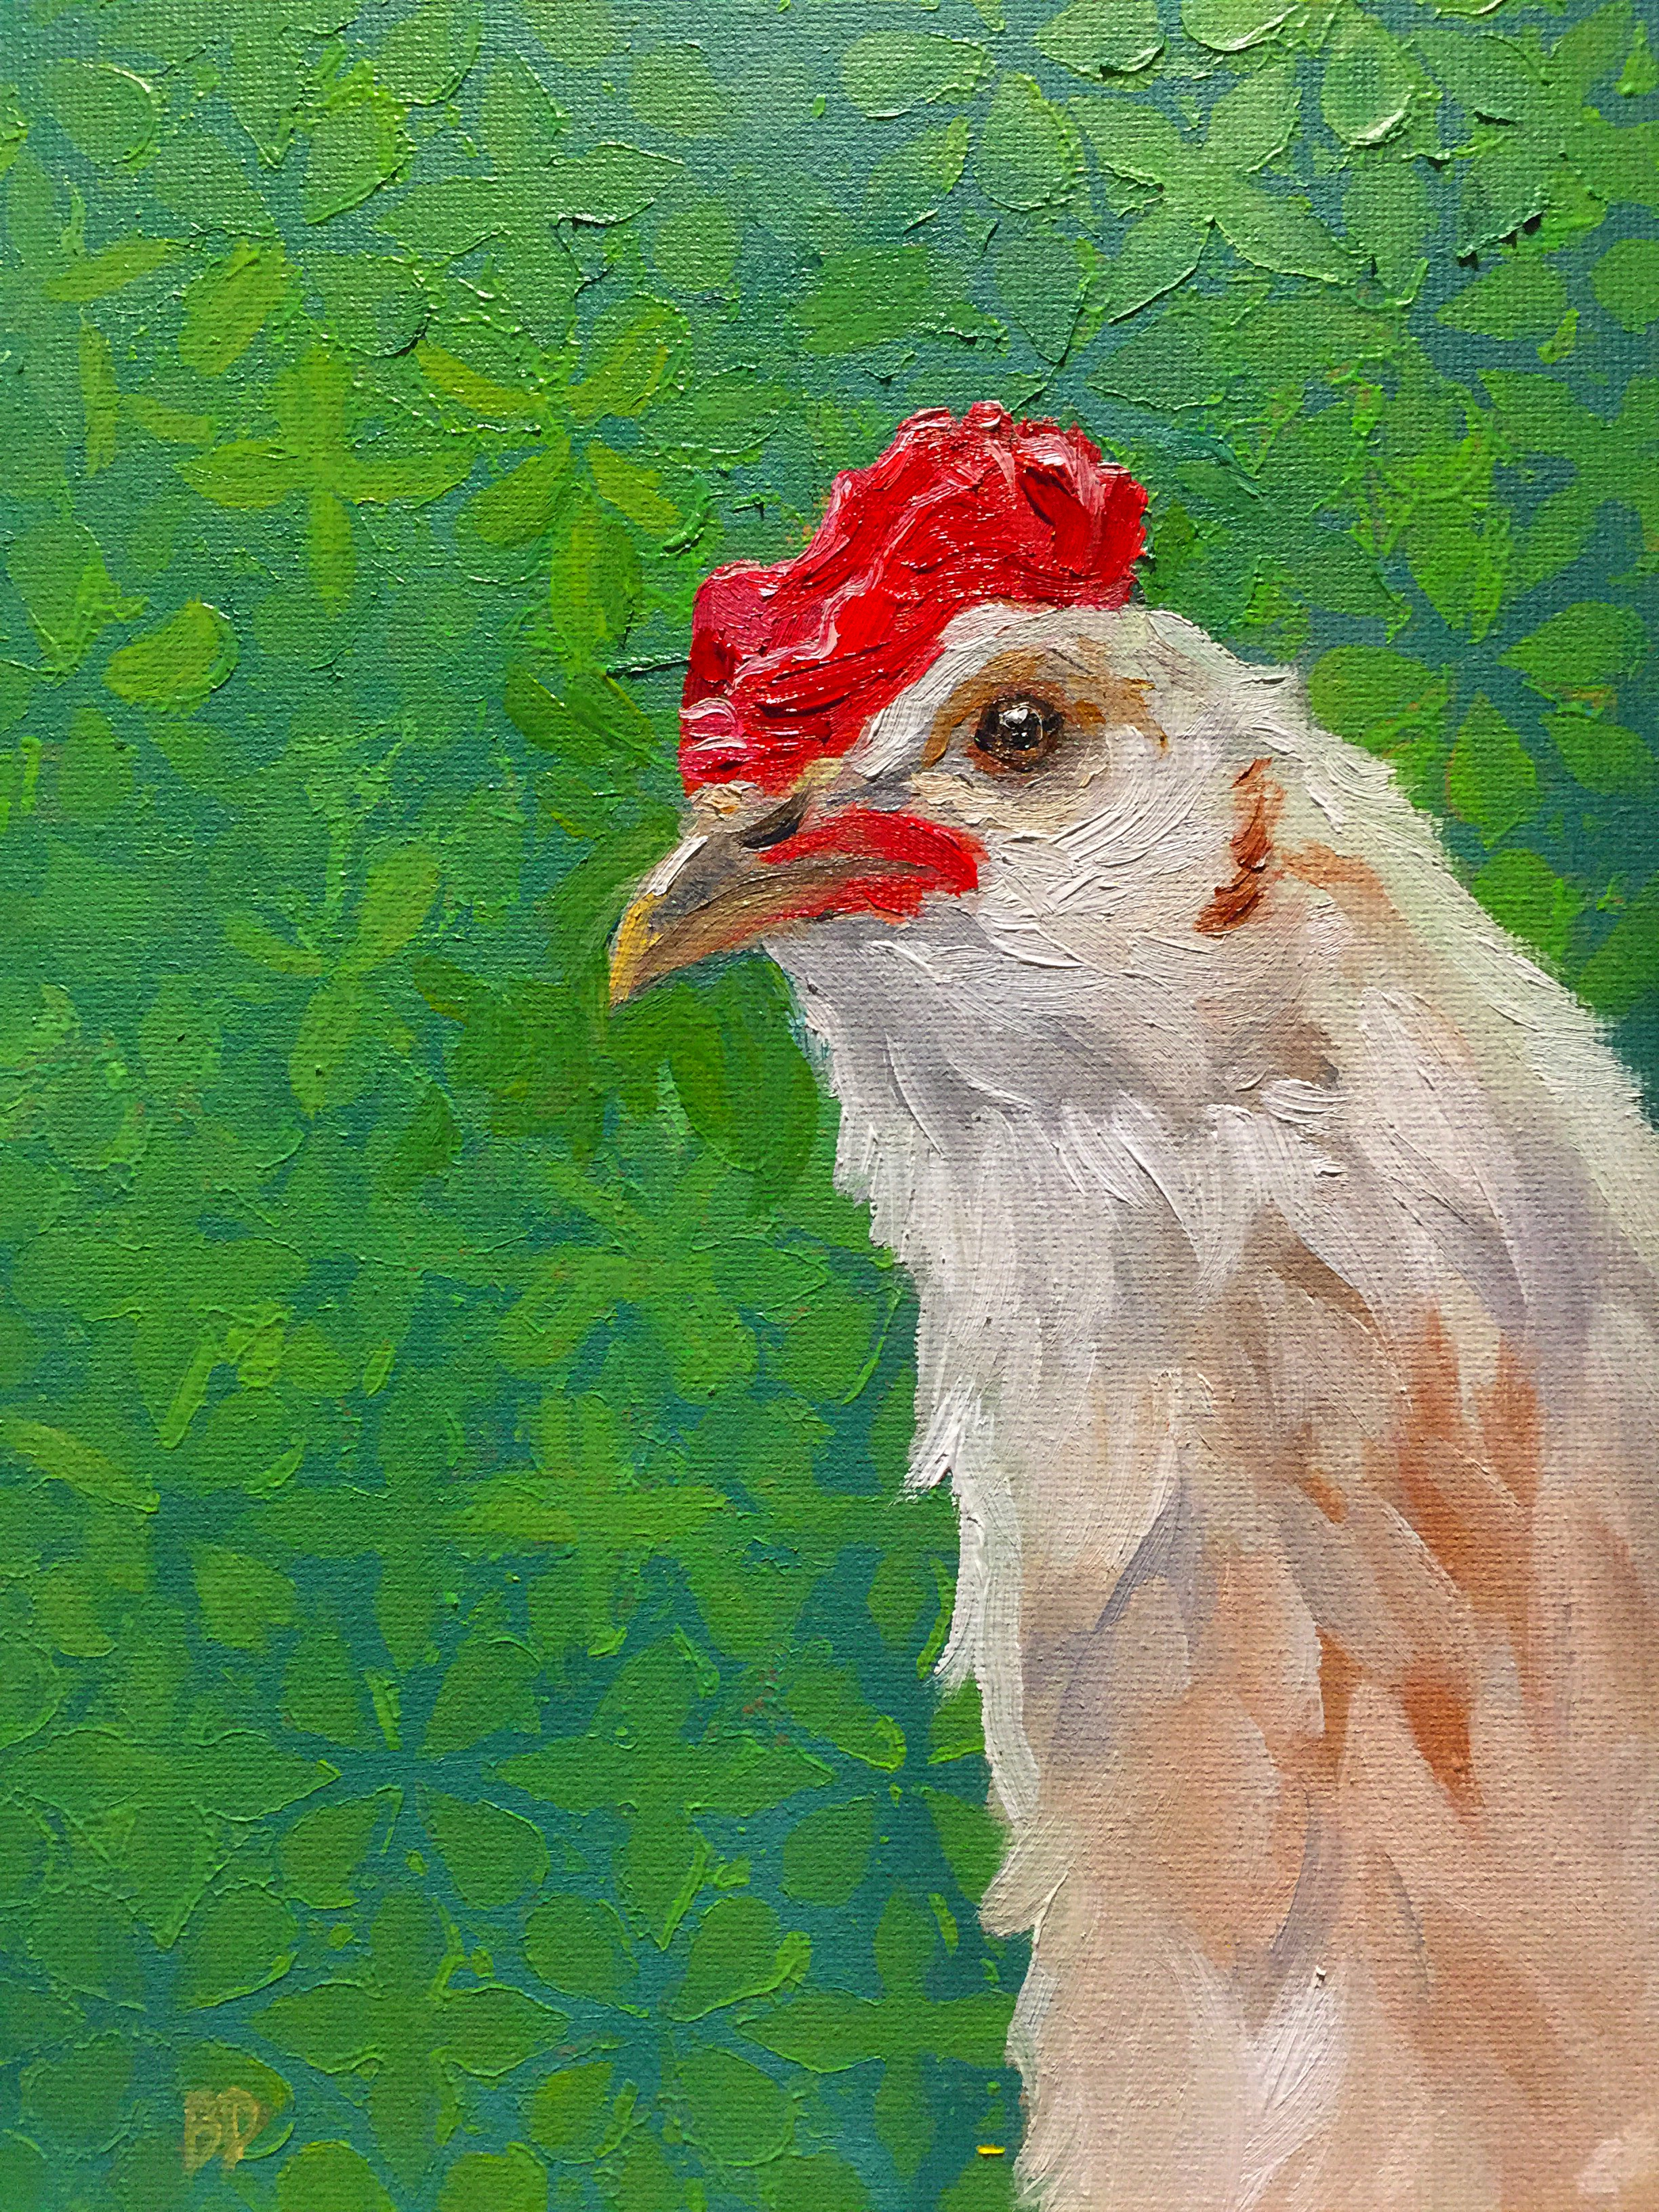 "Little Chick, 9.5 x 7"", oil on canvas"